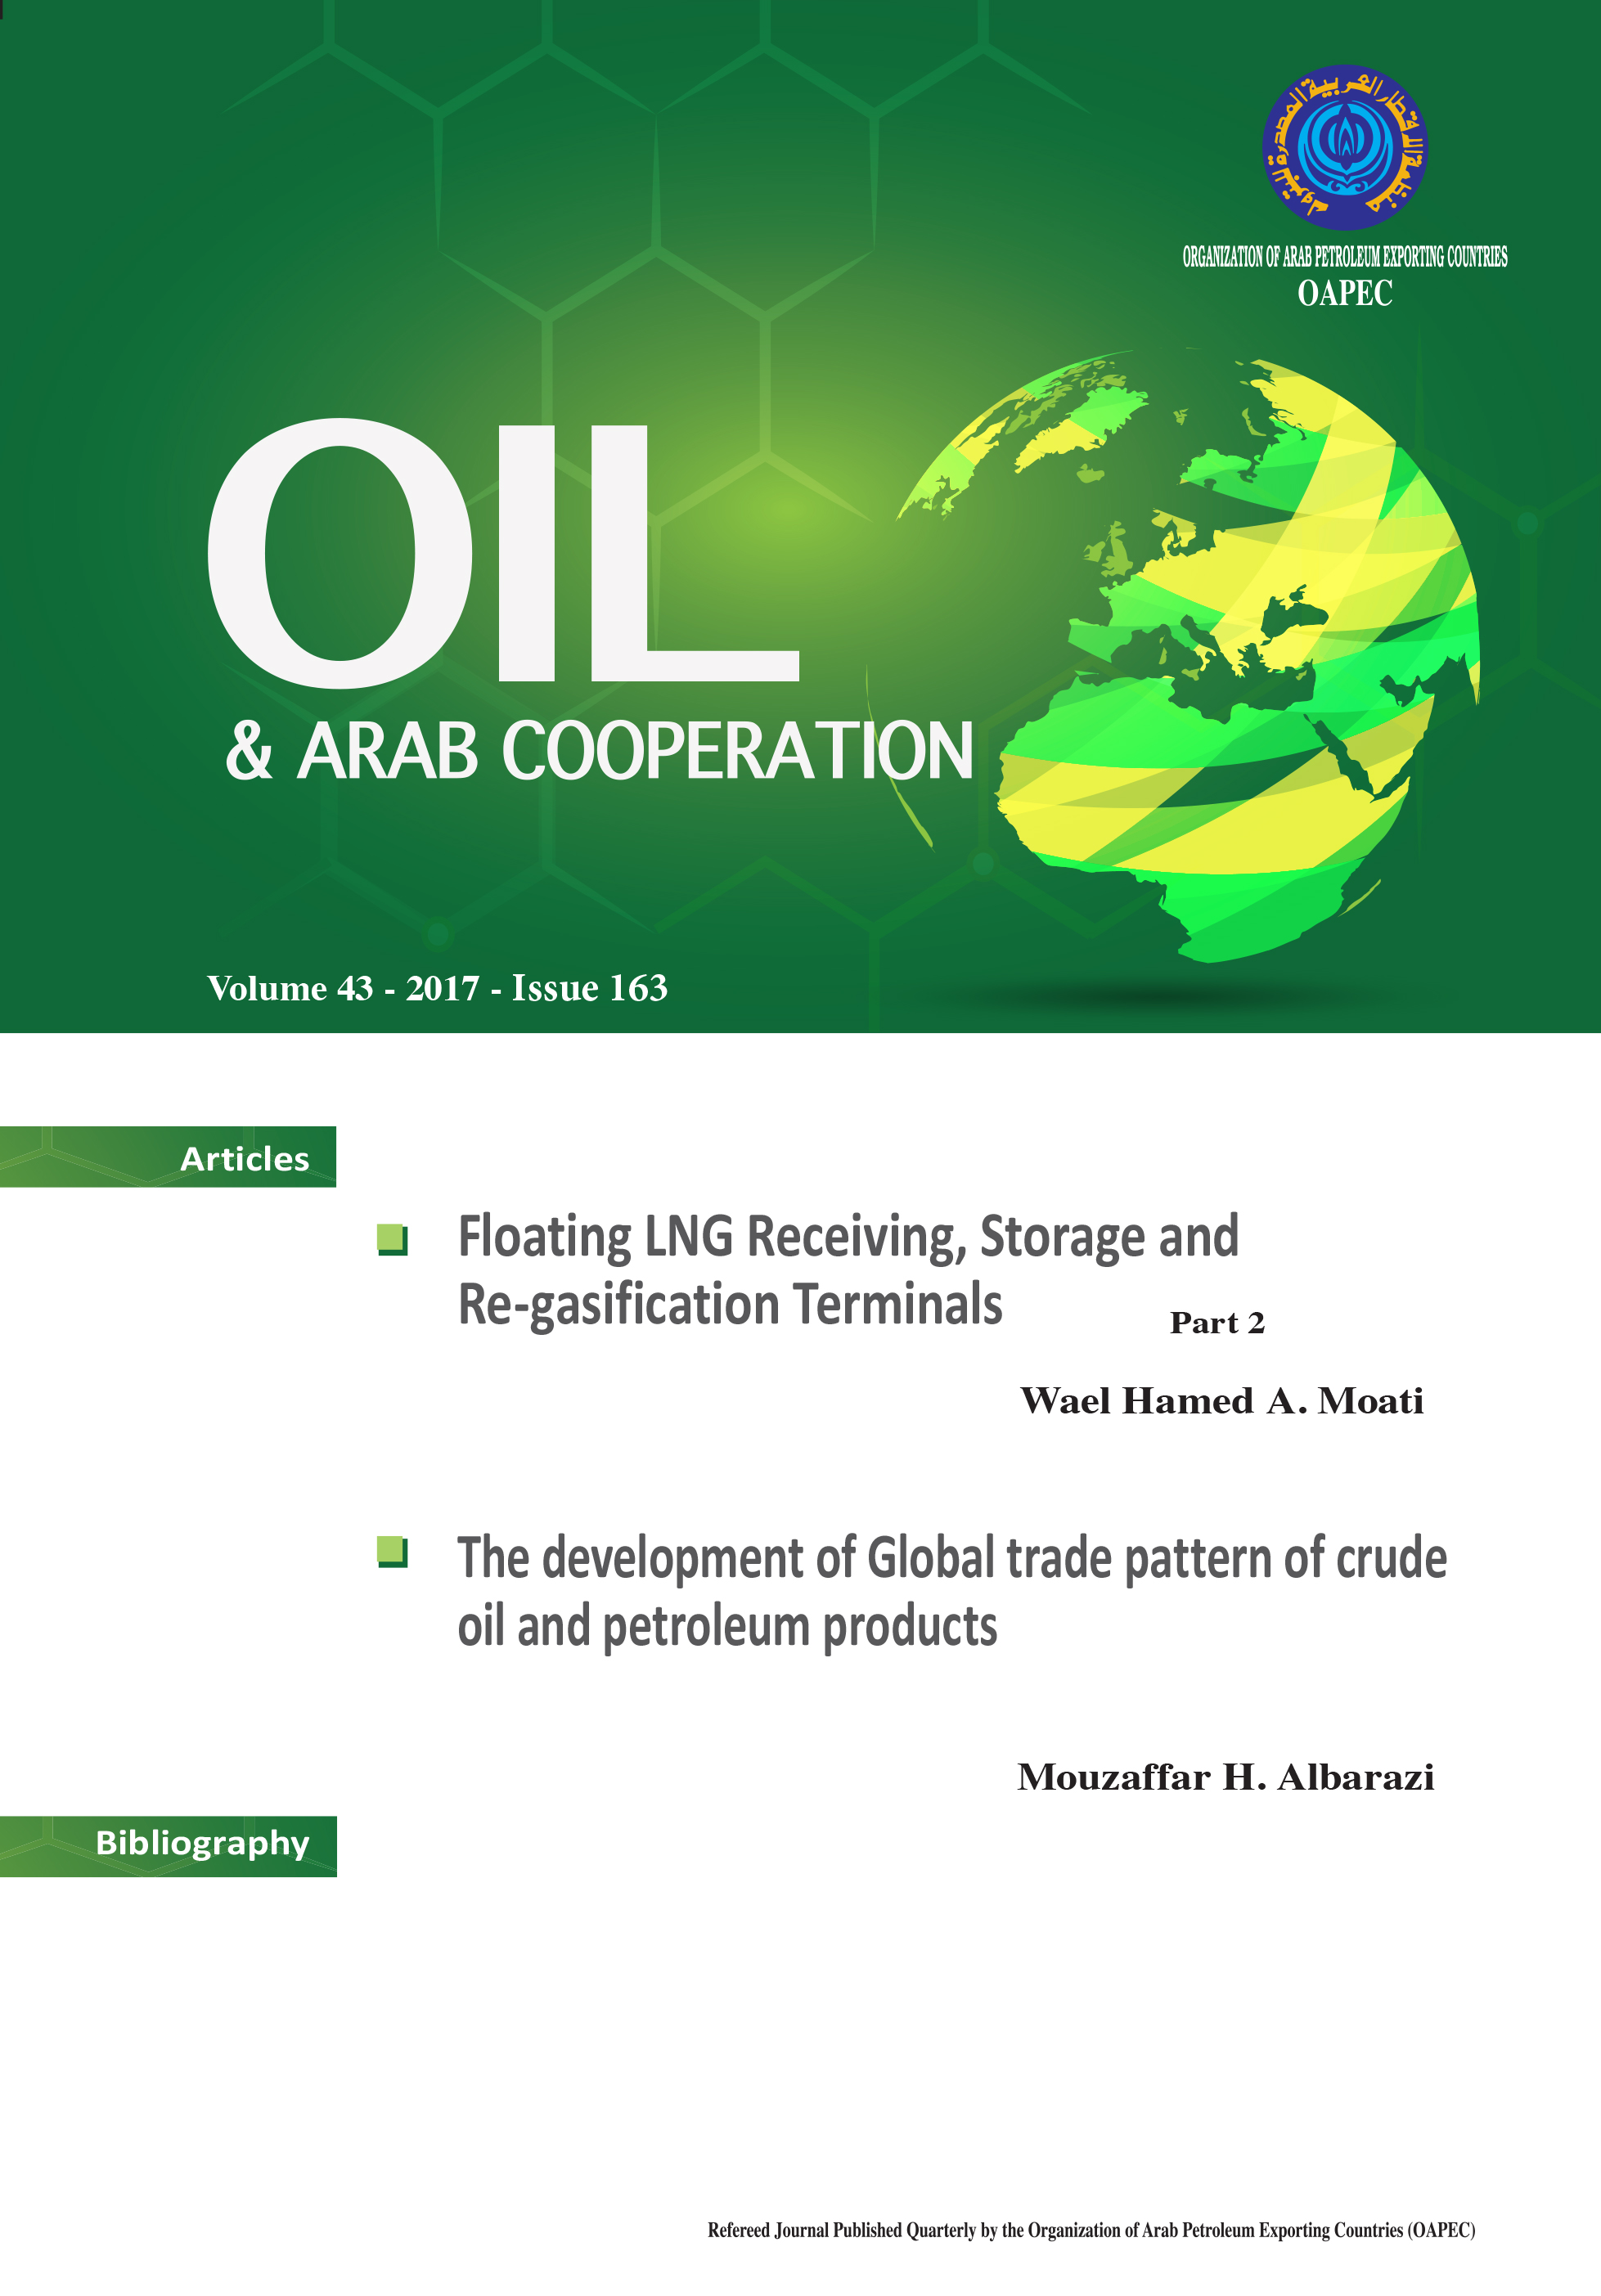 Oil and Arab Cooperation Journal | OAPEC